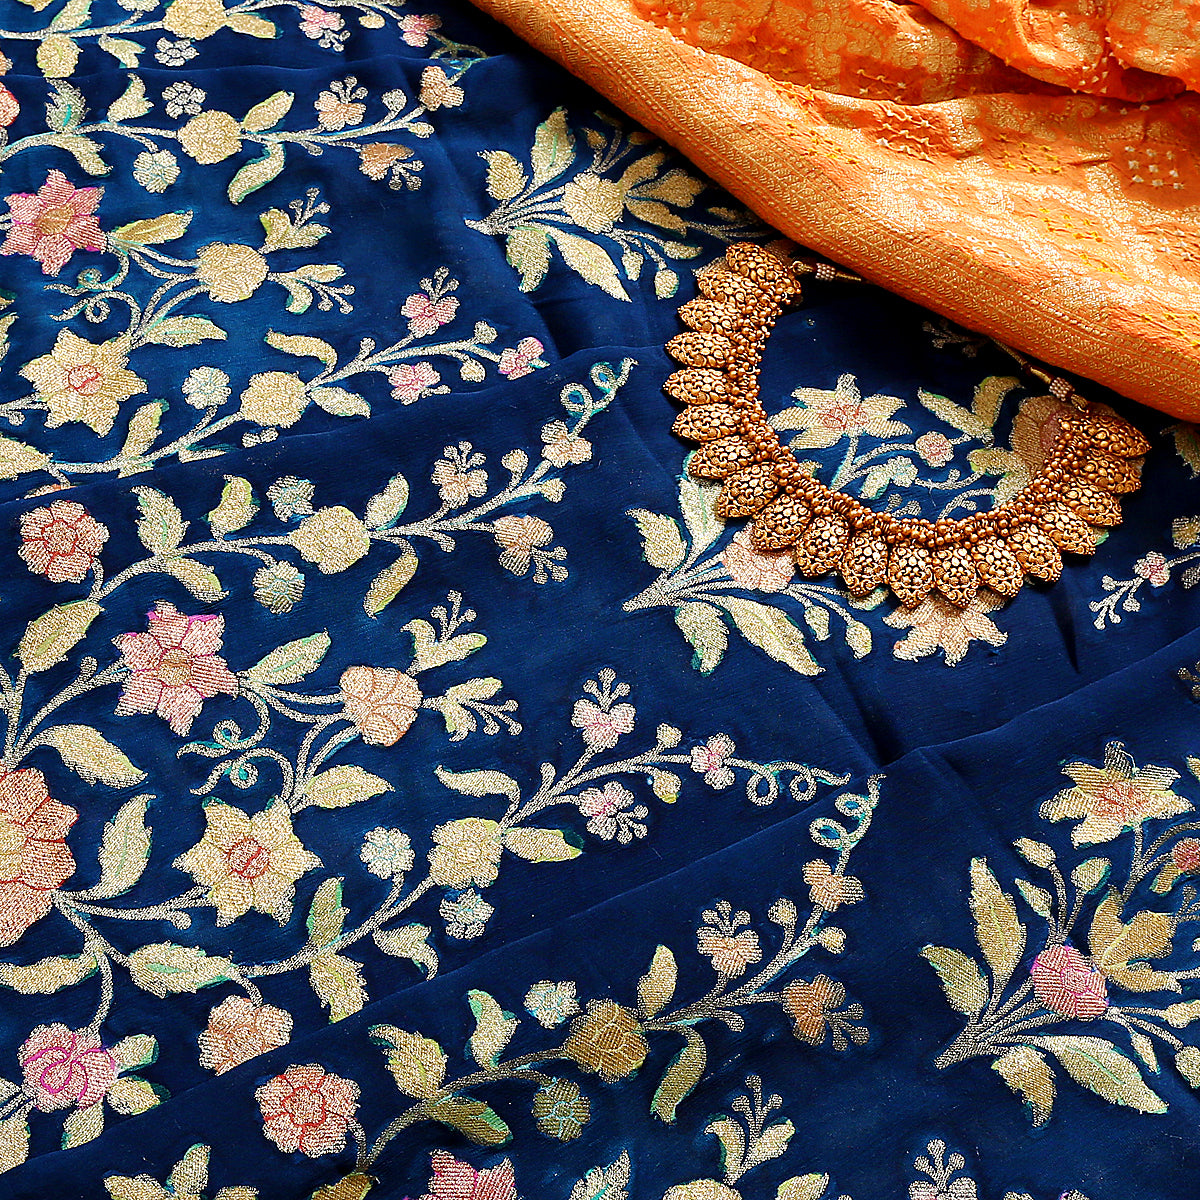 Handwoven Navy Blue banarasi georgette meenakari Lehenga with hand brush painting